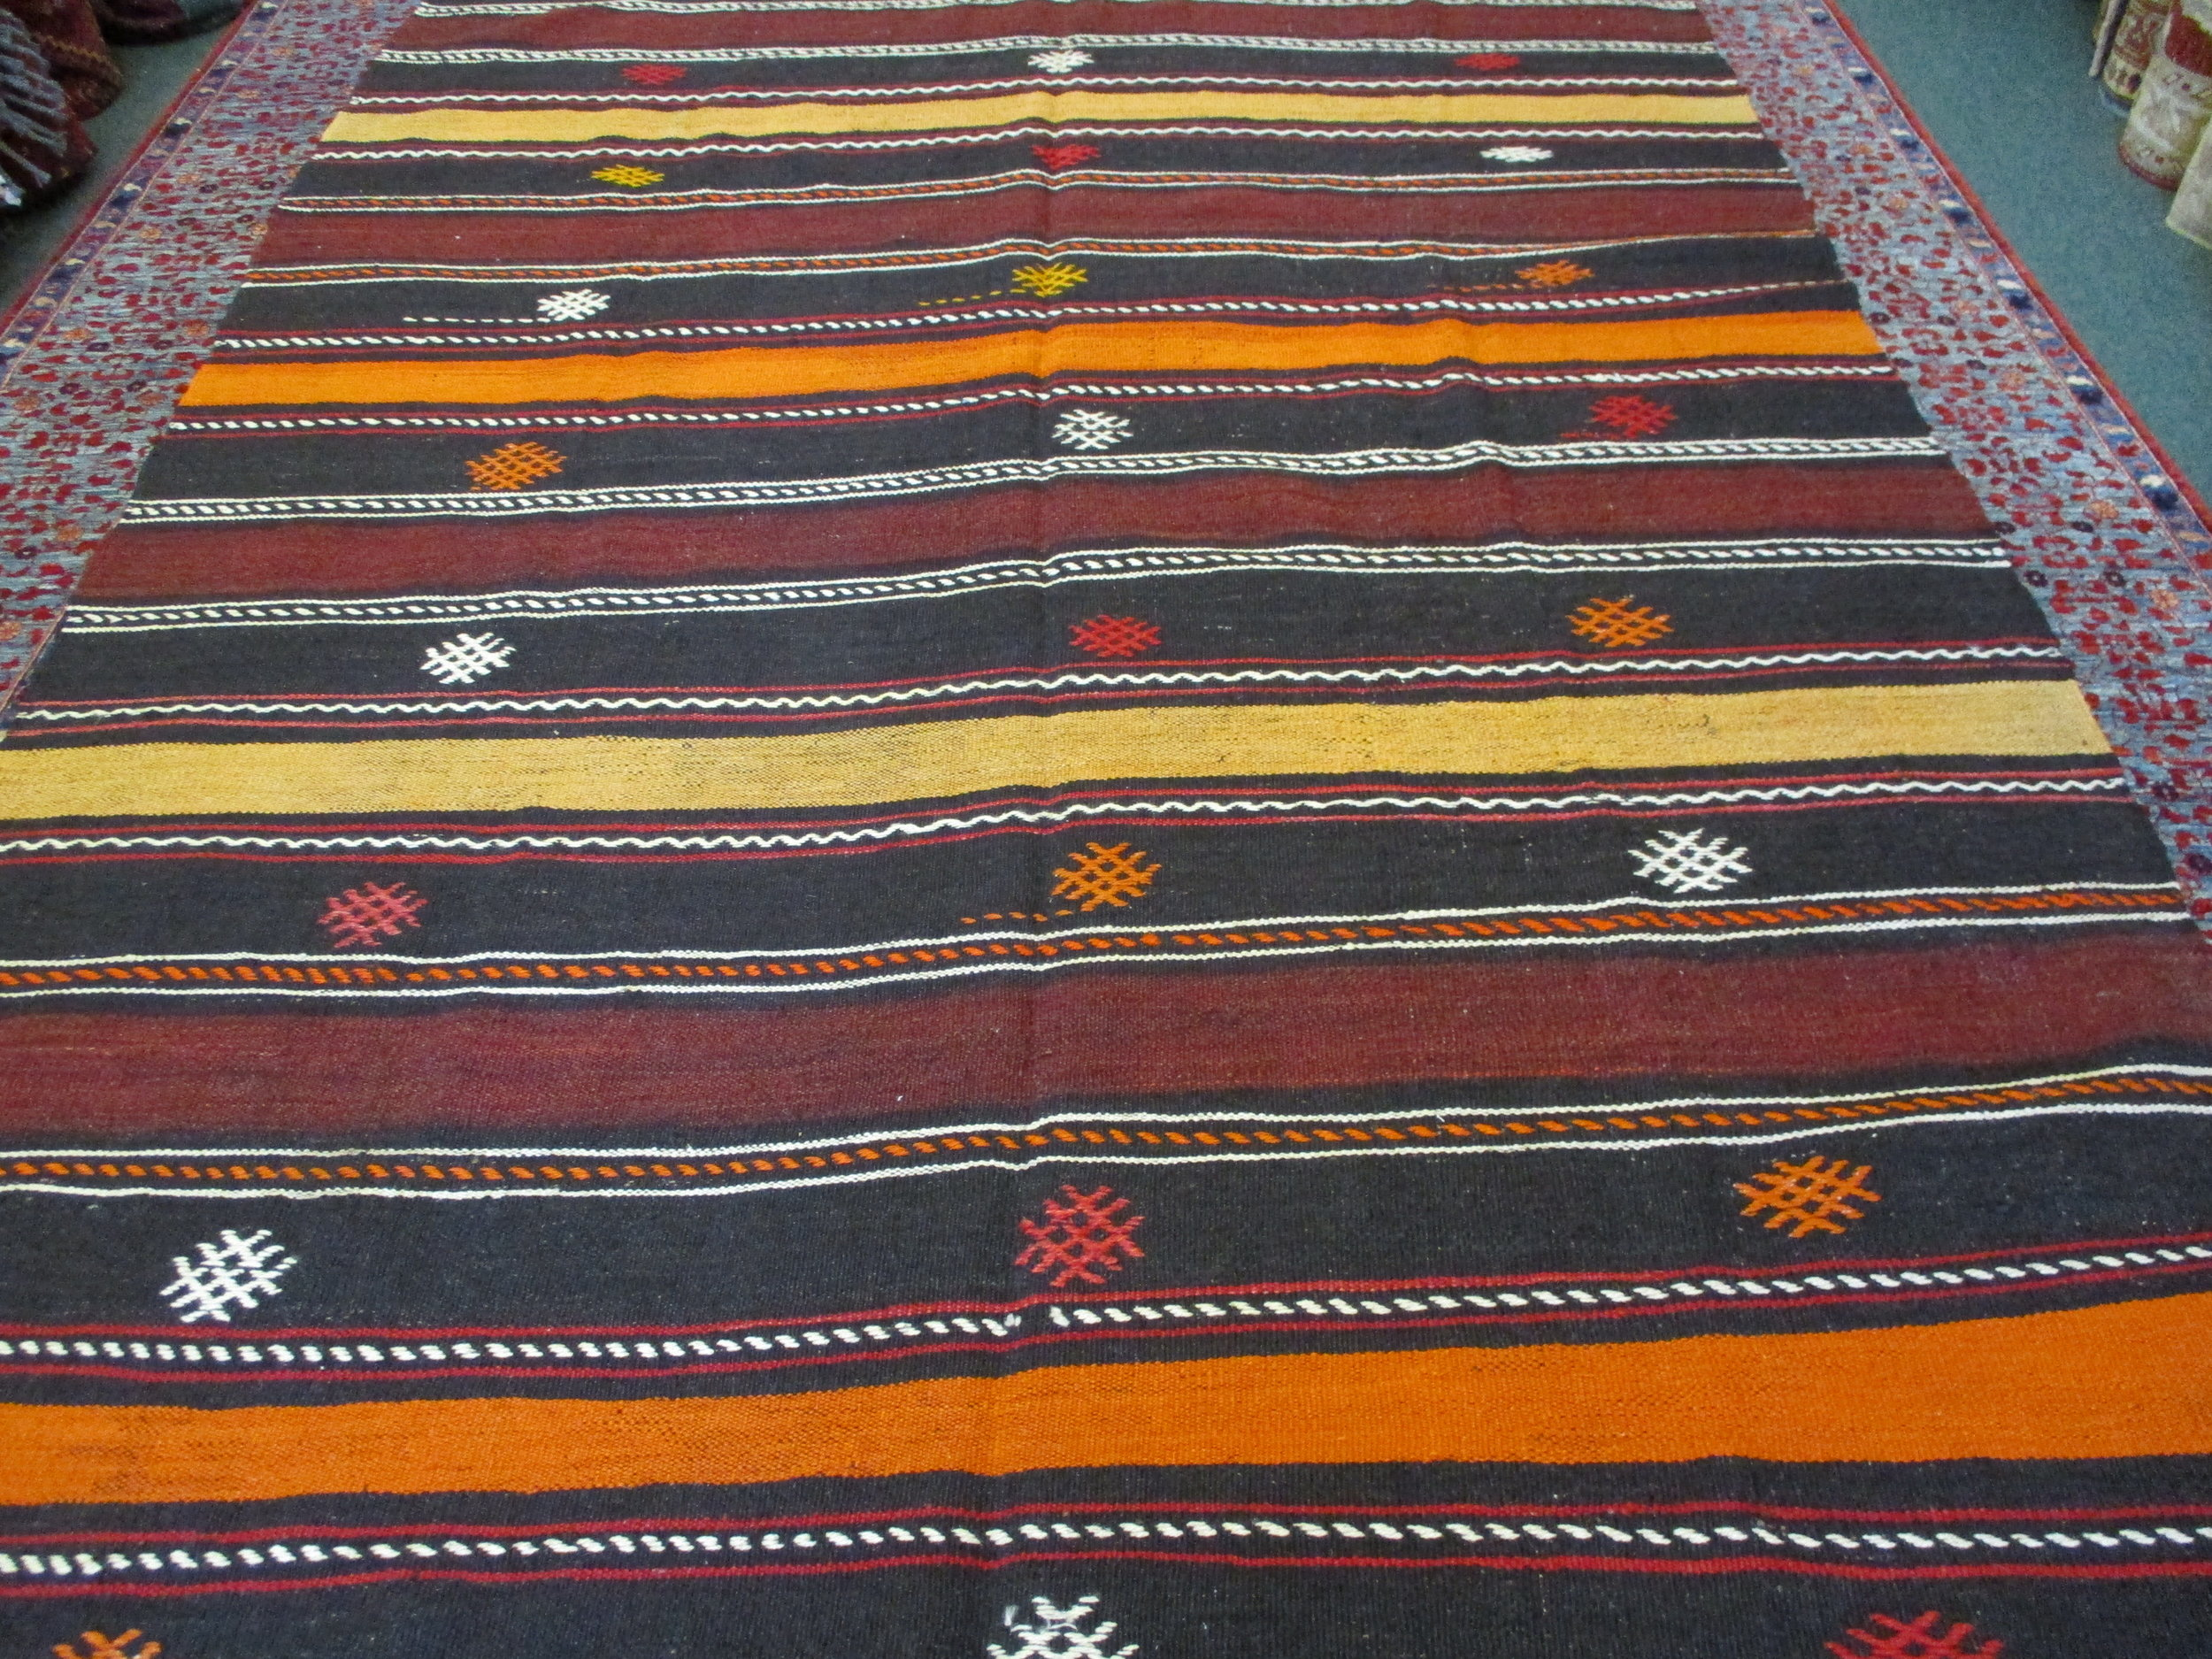 "6 x 9'7"" Vintage Turkish kilim. Bright, interesting colors in earth tones."